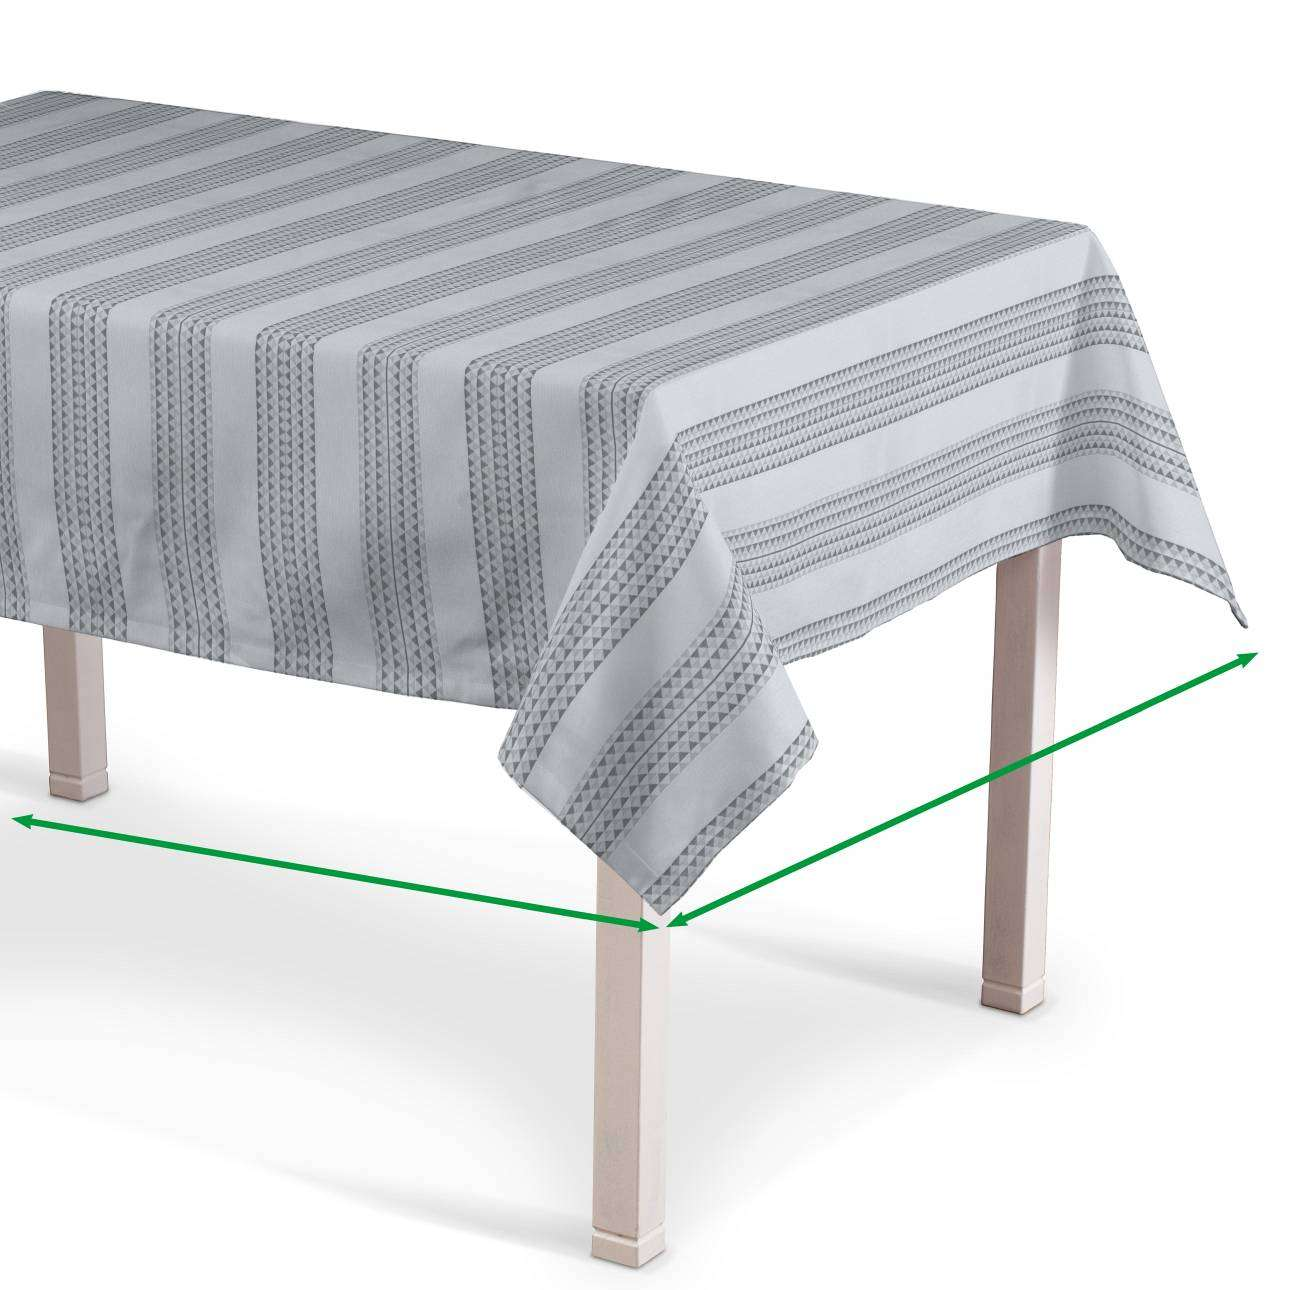 Rectangular tablecloth in collection Rustica, fabric: 140-32